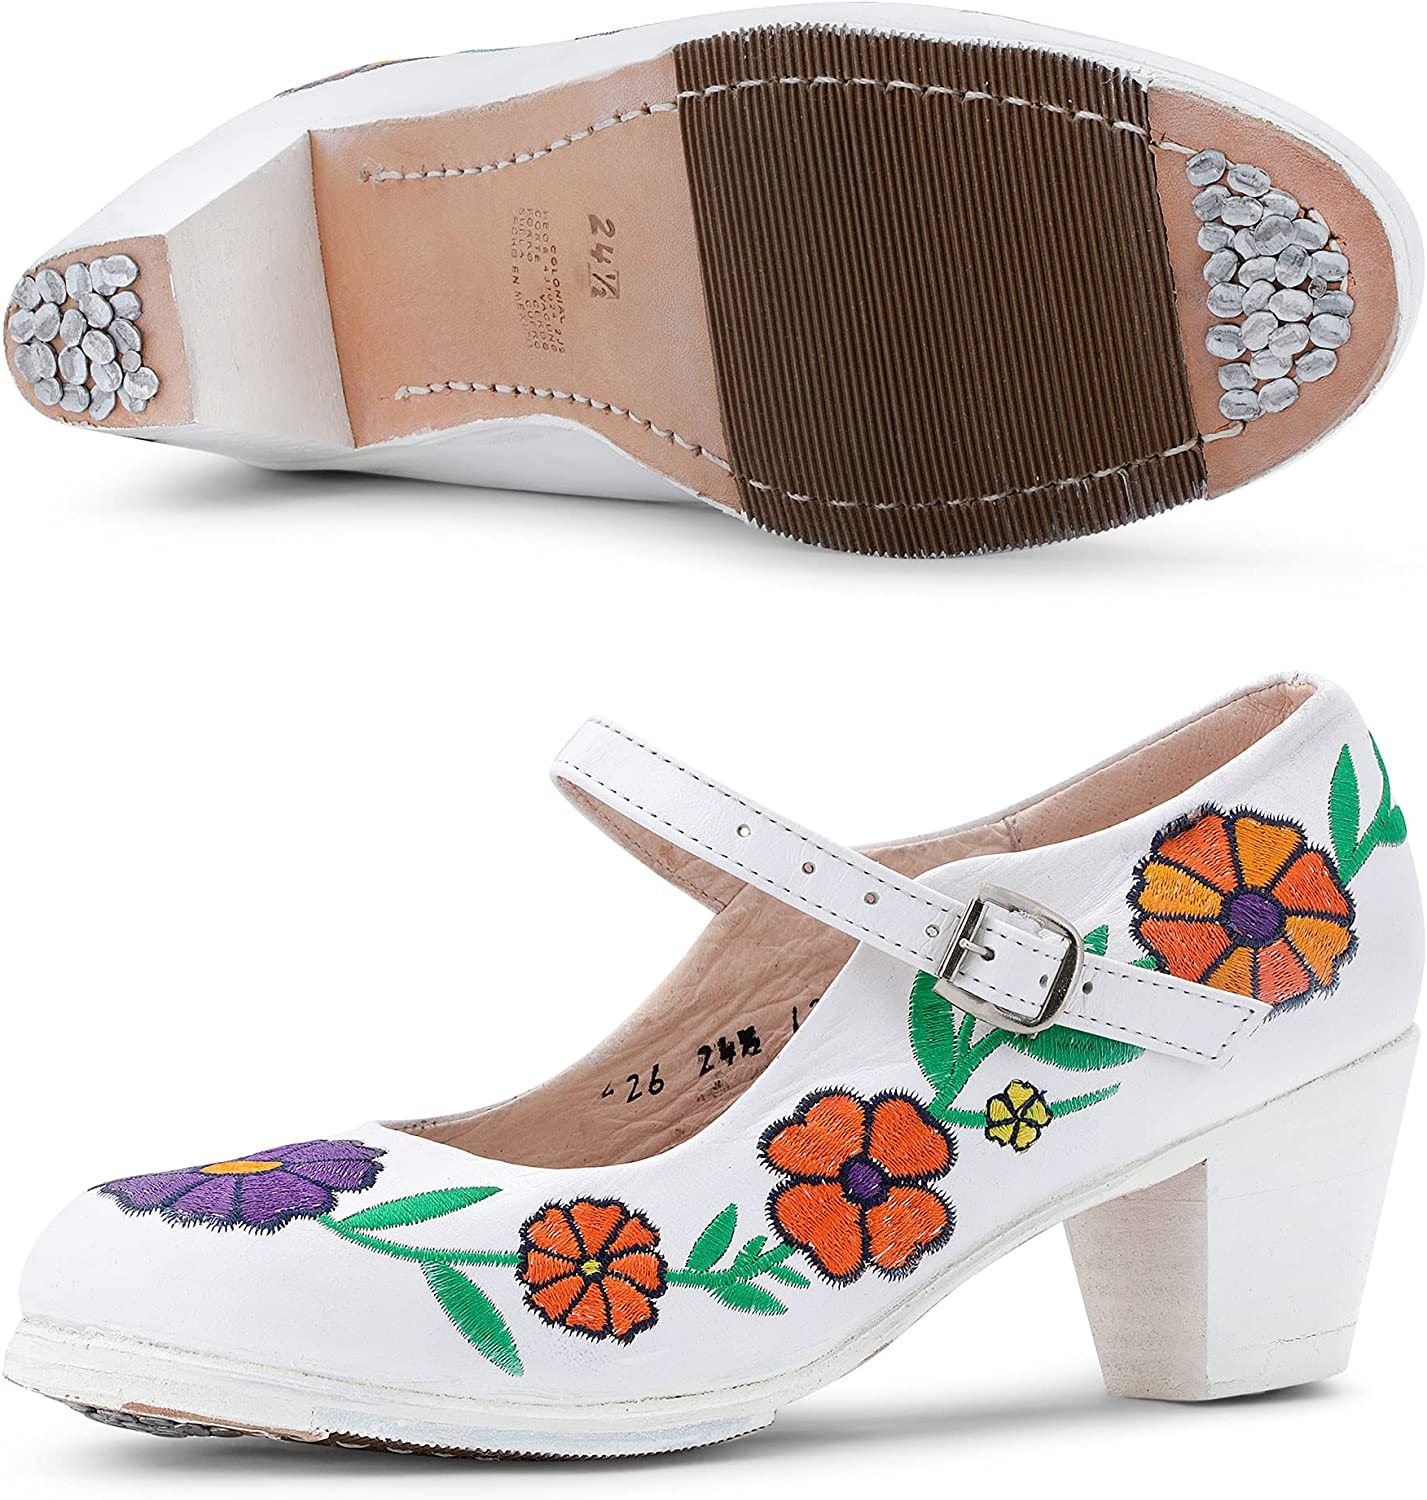 Colonial 226 Luxury Women's Folklorico Dance Oaxaca Sale price Nails F with Shoes